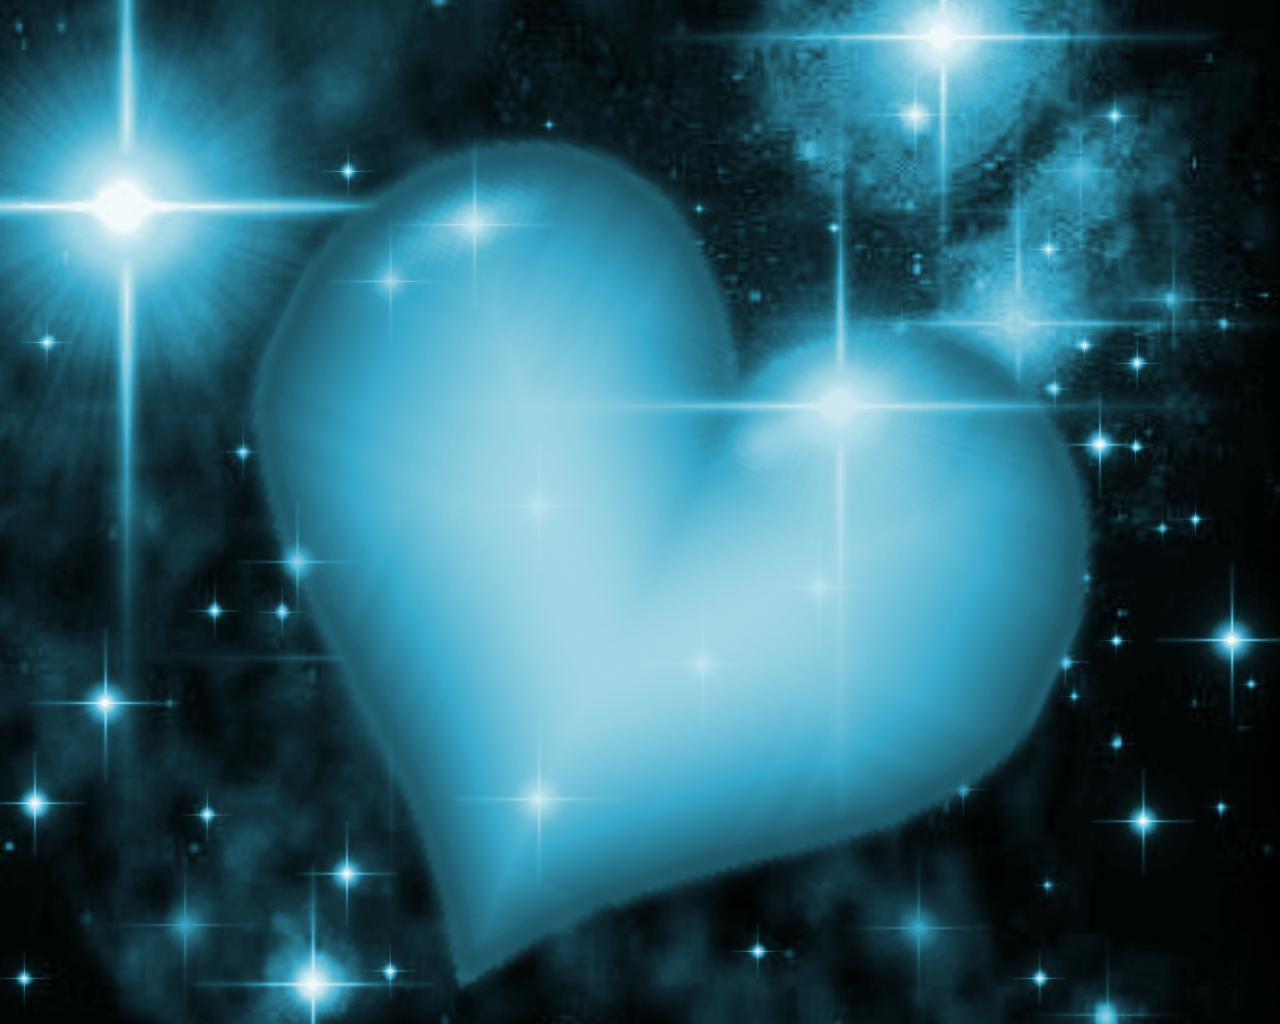 Background Wallpaper Image: Blue Heart With Starry Background